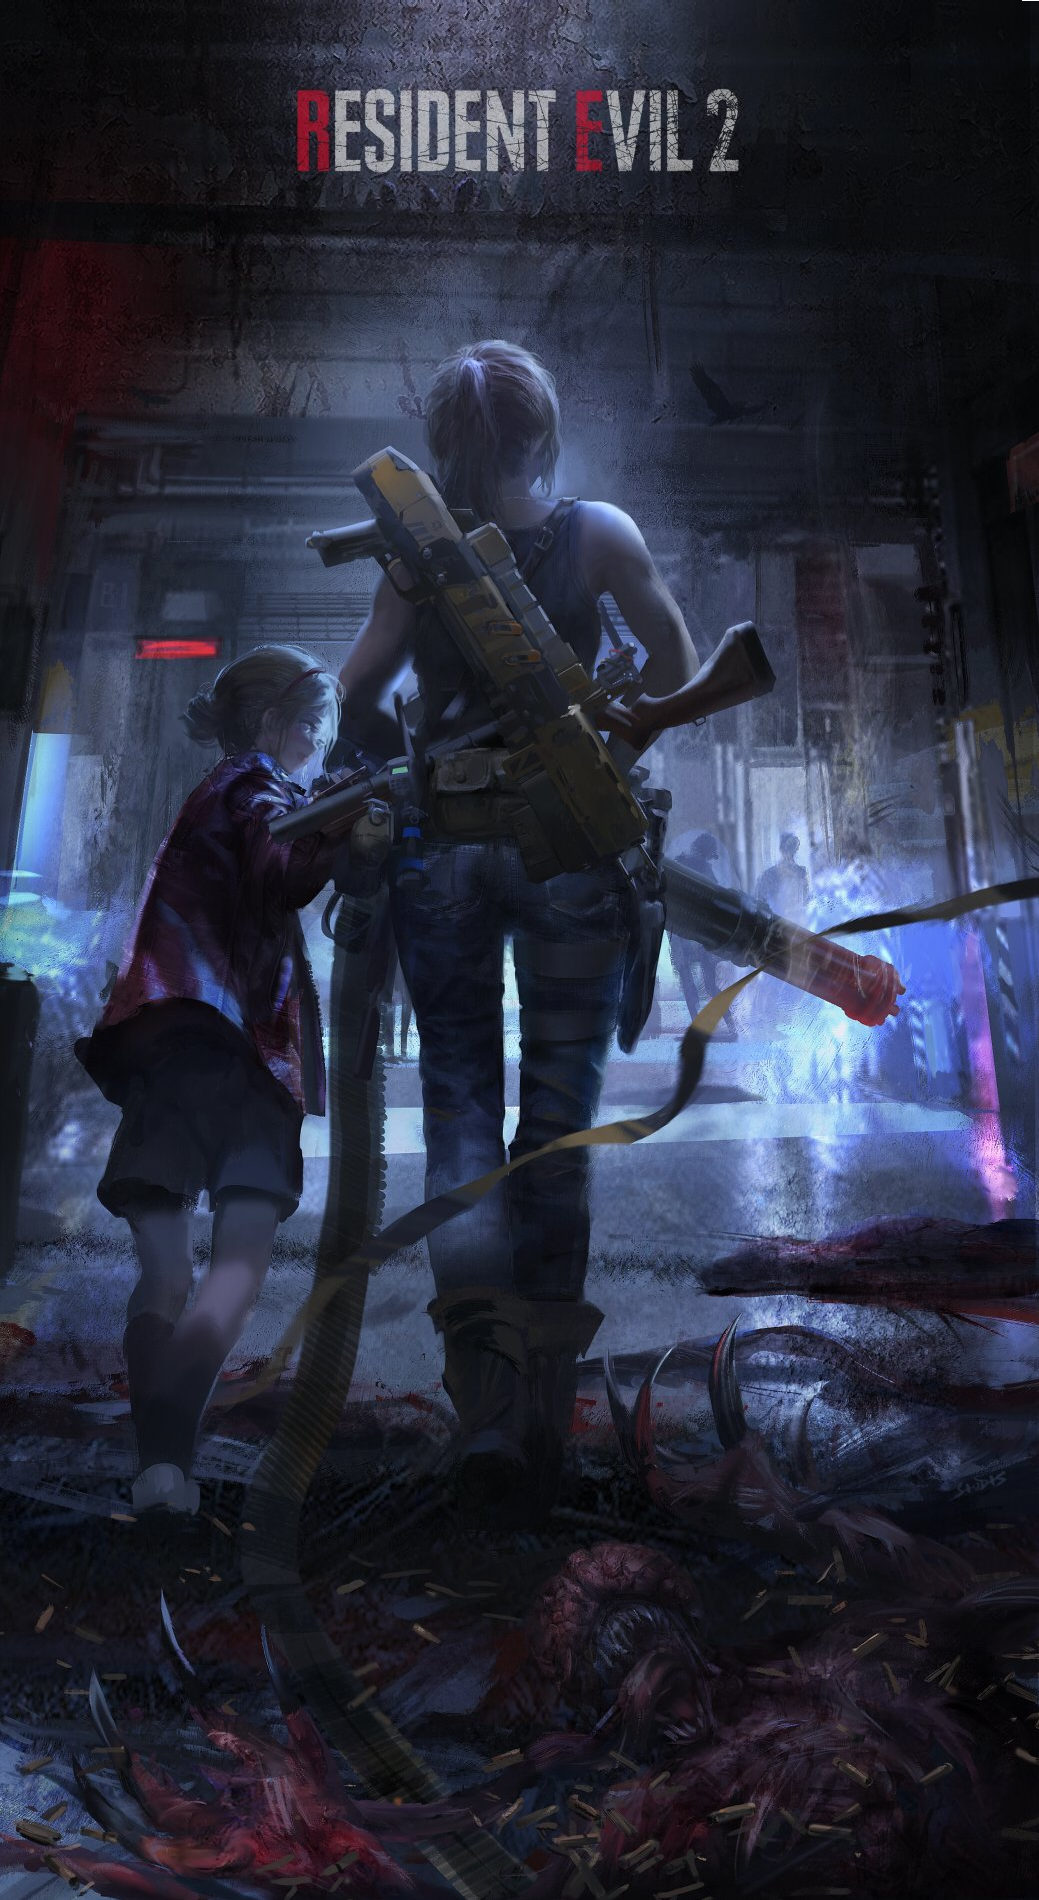 Pin by Luis Armand0 on Resident evil game Resident evil